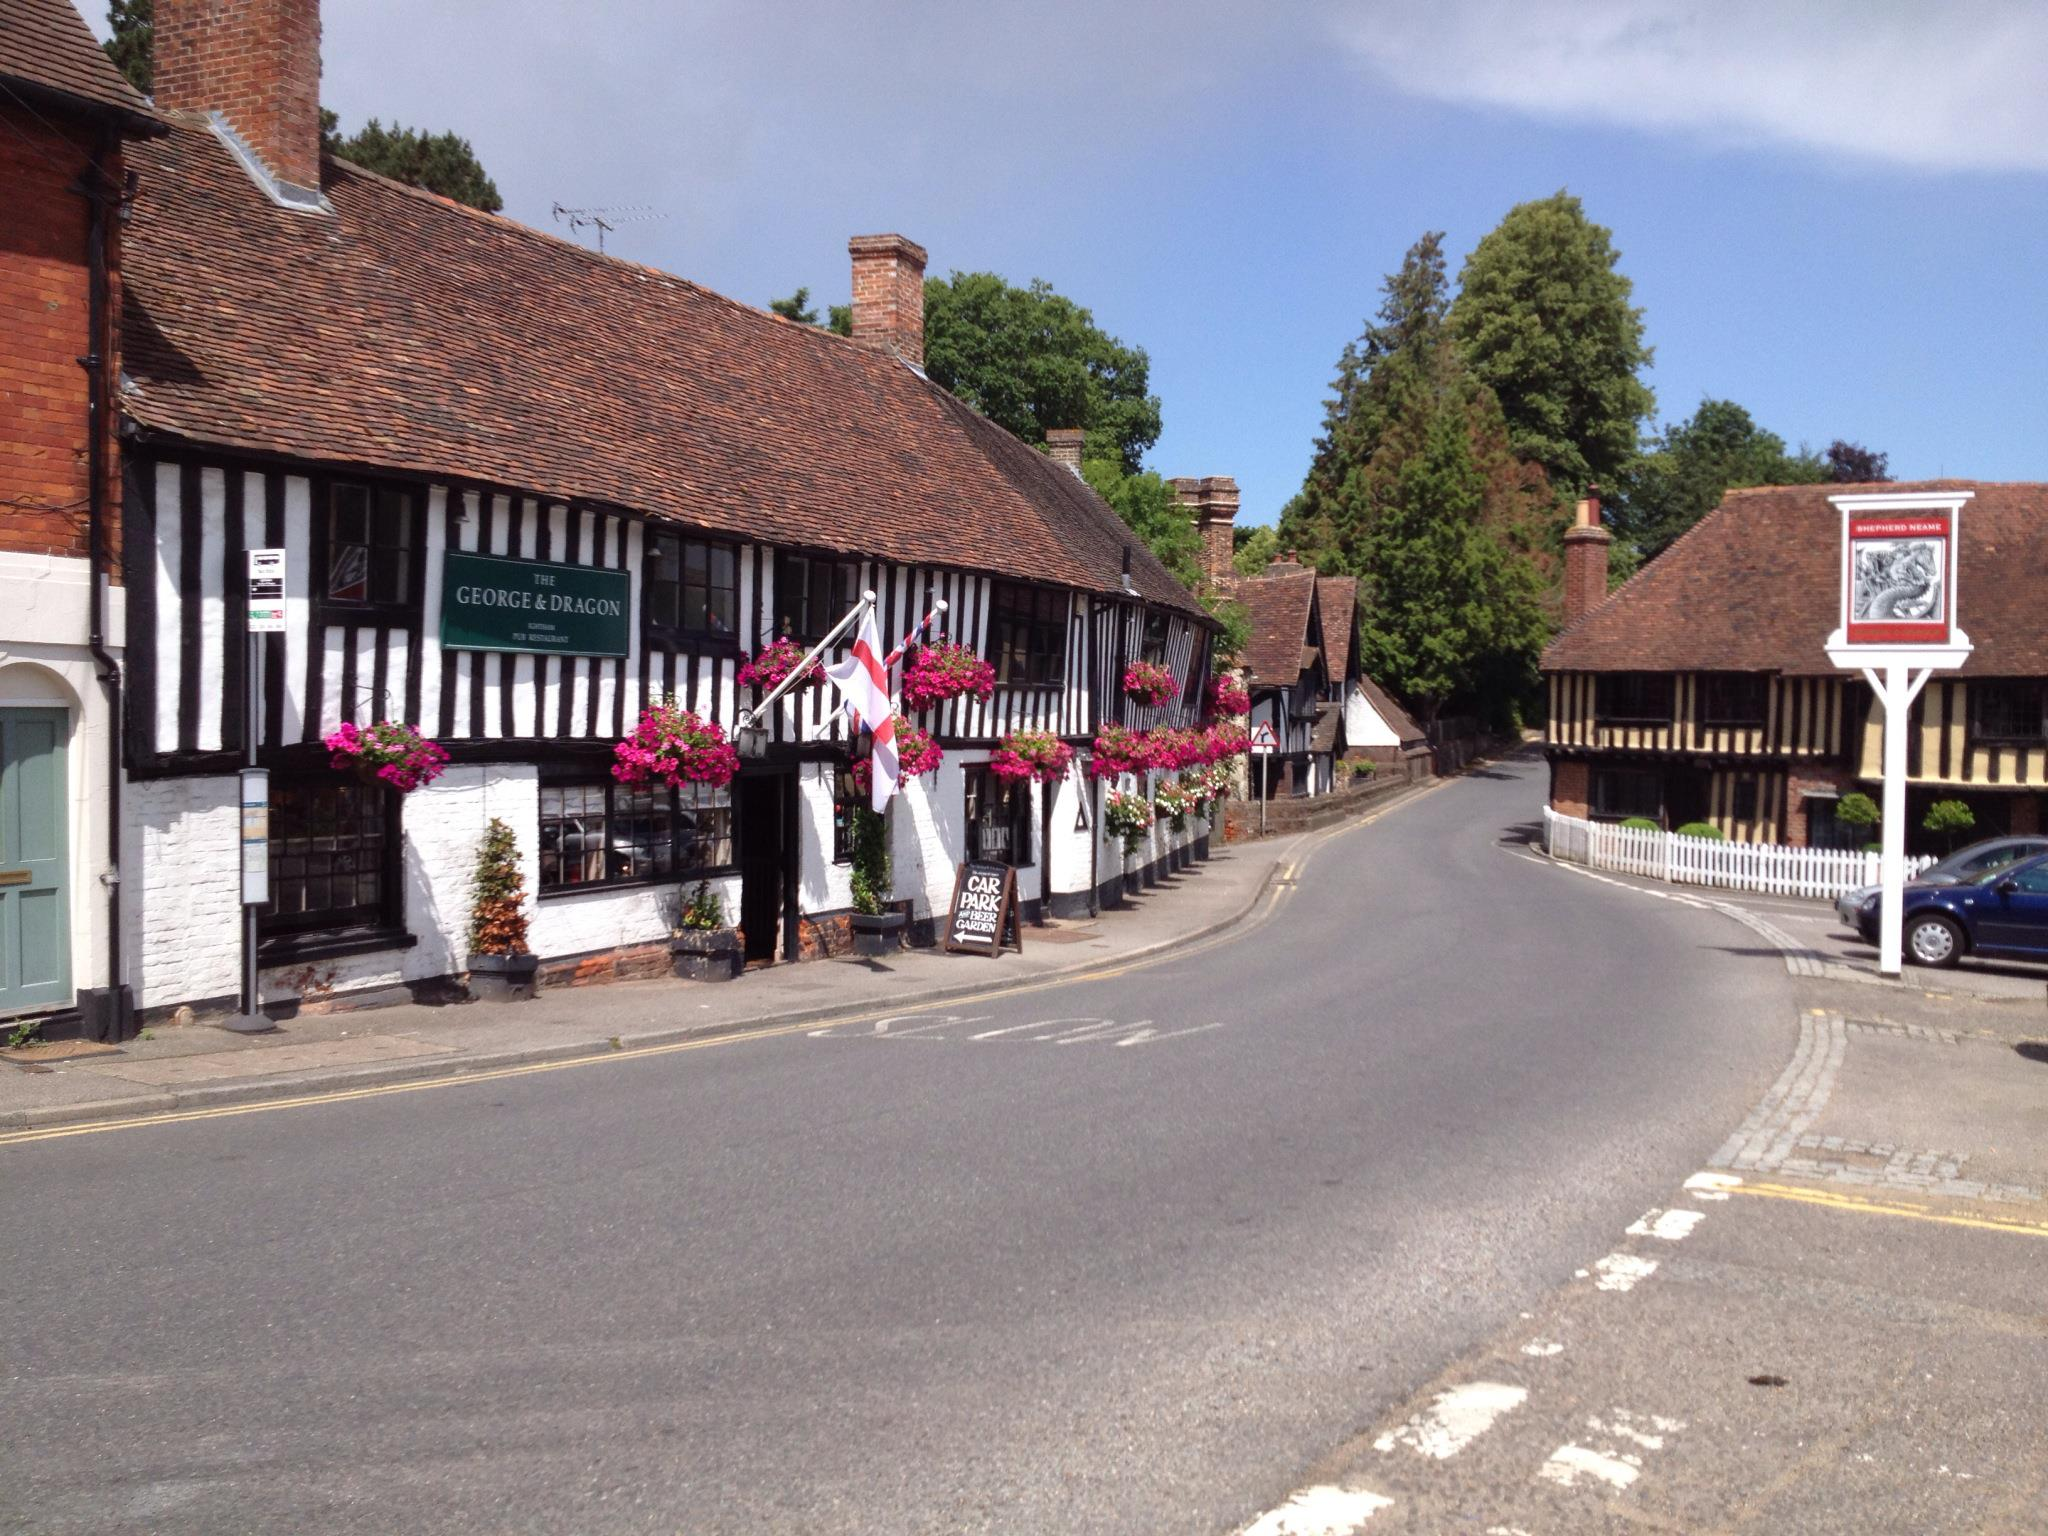 George and Dragon, Ightham